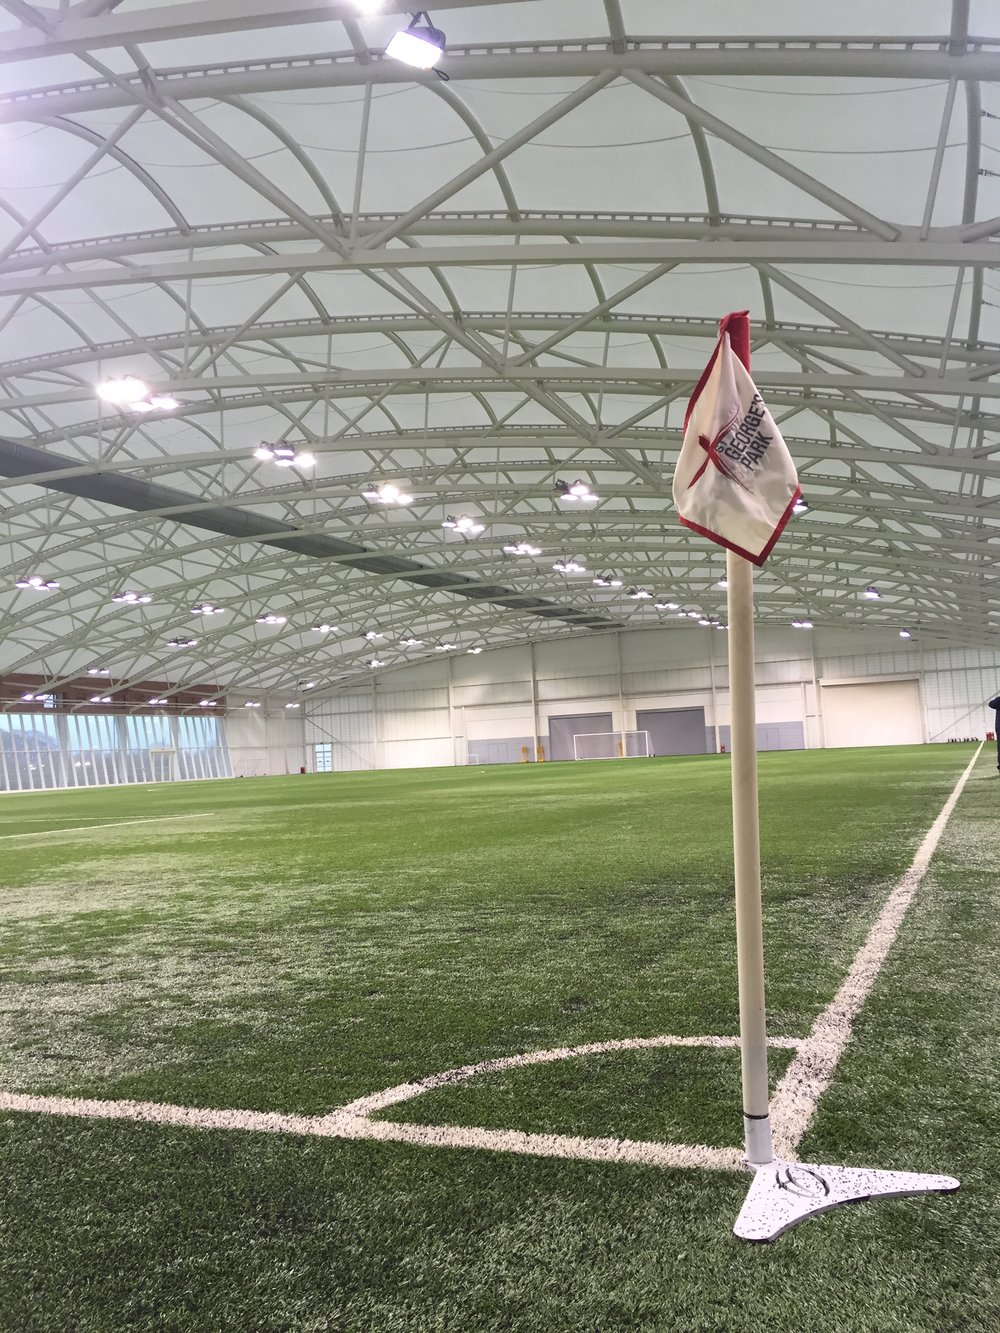 St. George's Park, Burton, England - In February of 2016, Bobby and the U-16 BNT visit England's national training center and are thankful for such quality indoor facilities during the winter.